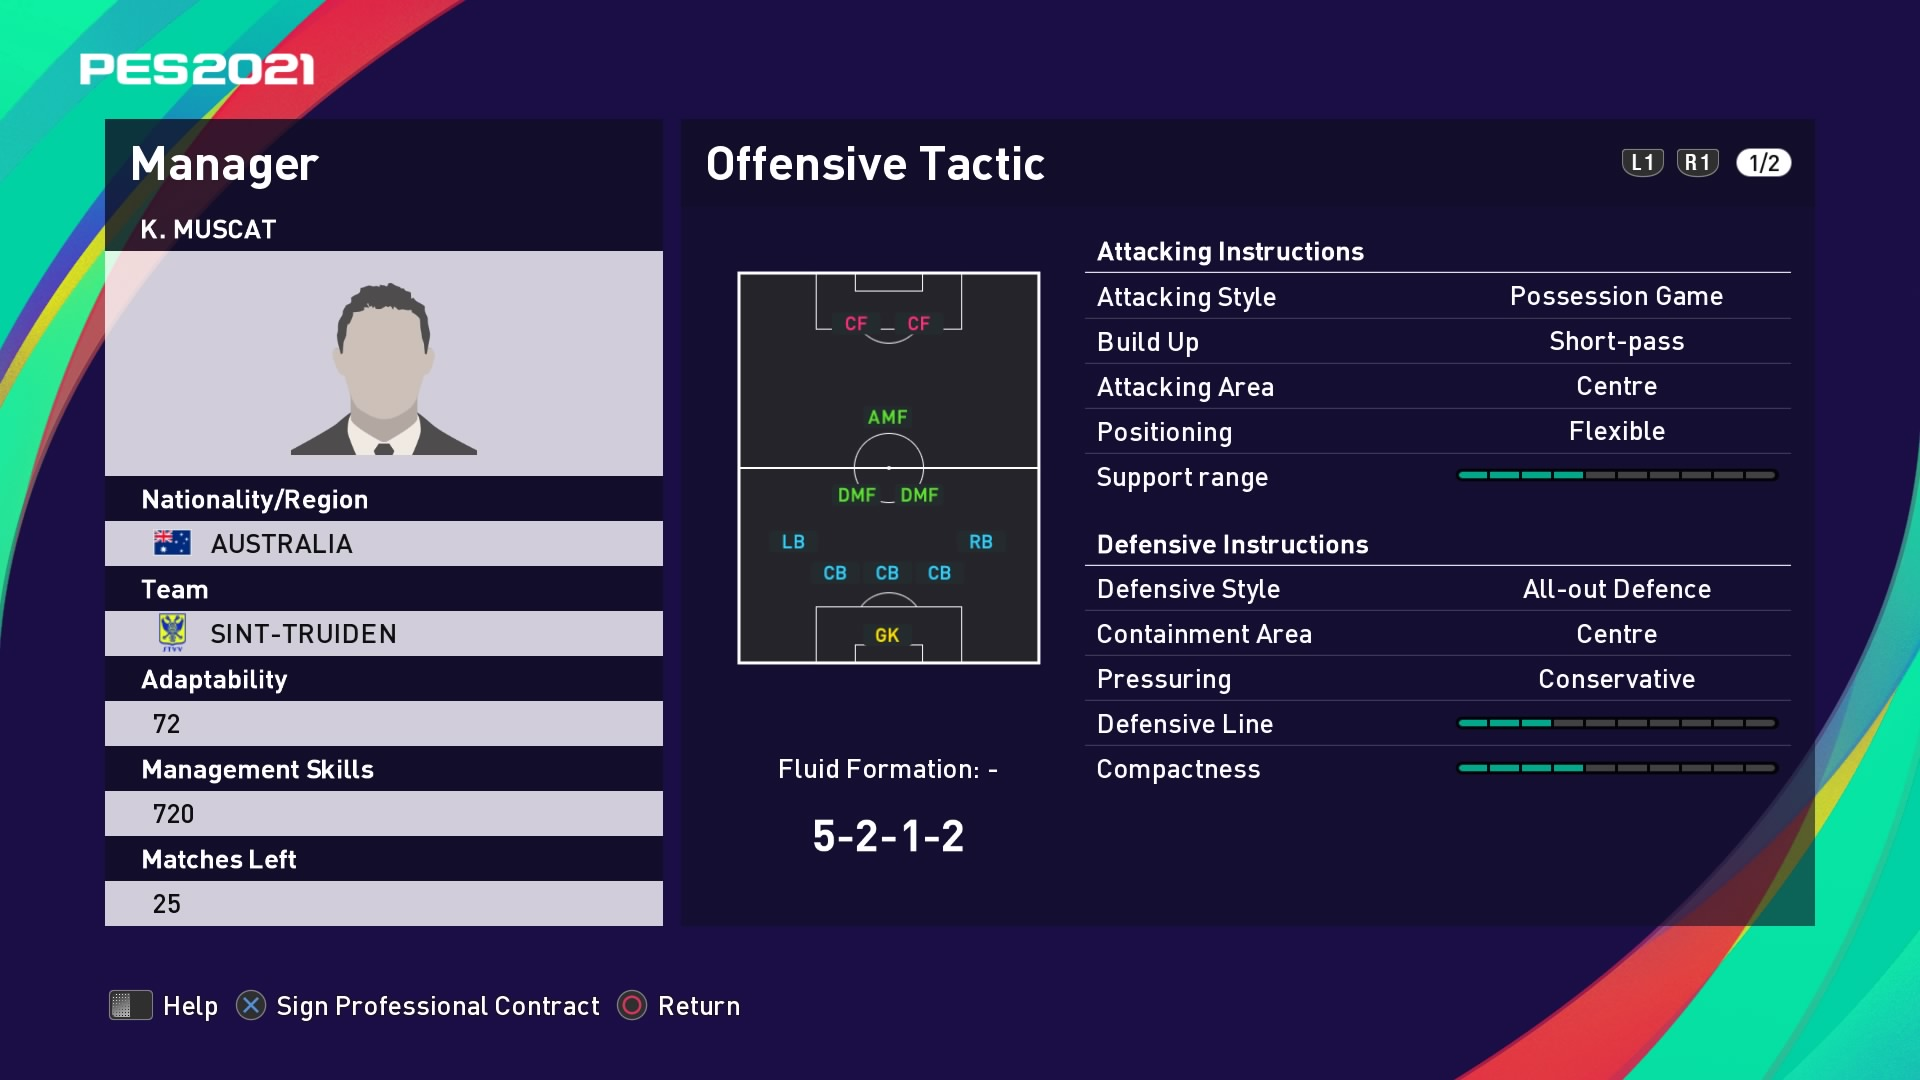 K. Muscat (Kevin Muscat) Offensive Tactic in PES 2021 myClub